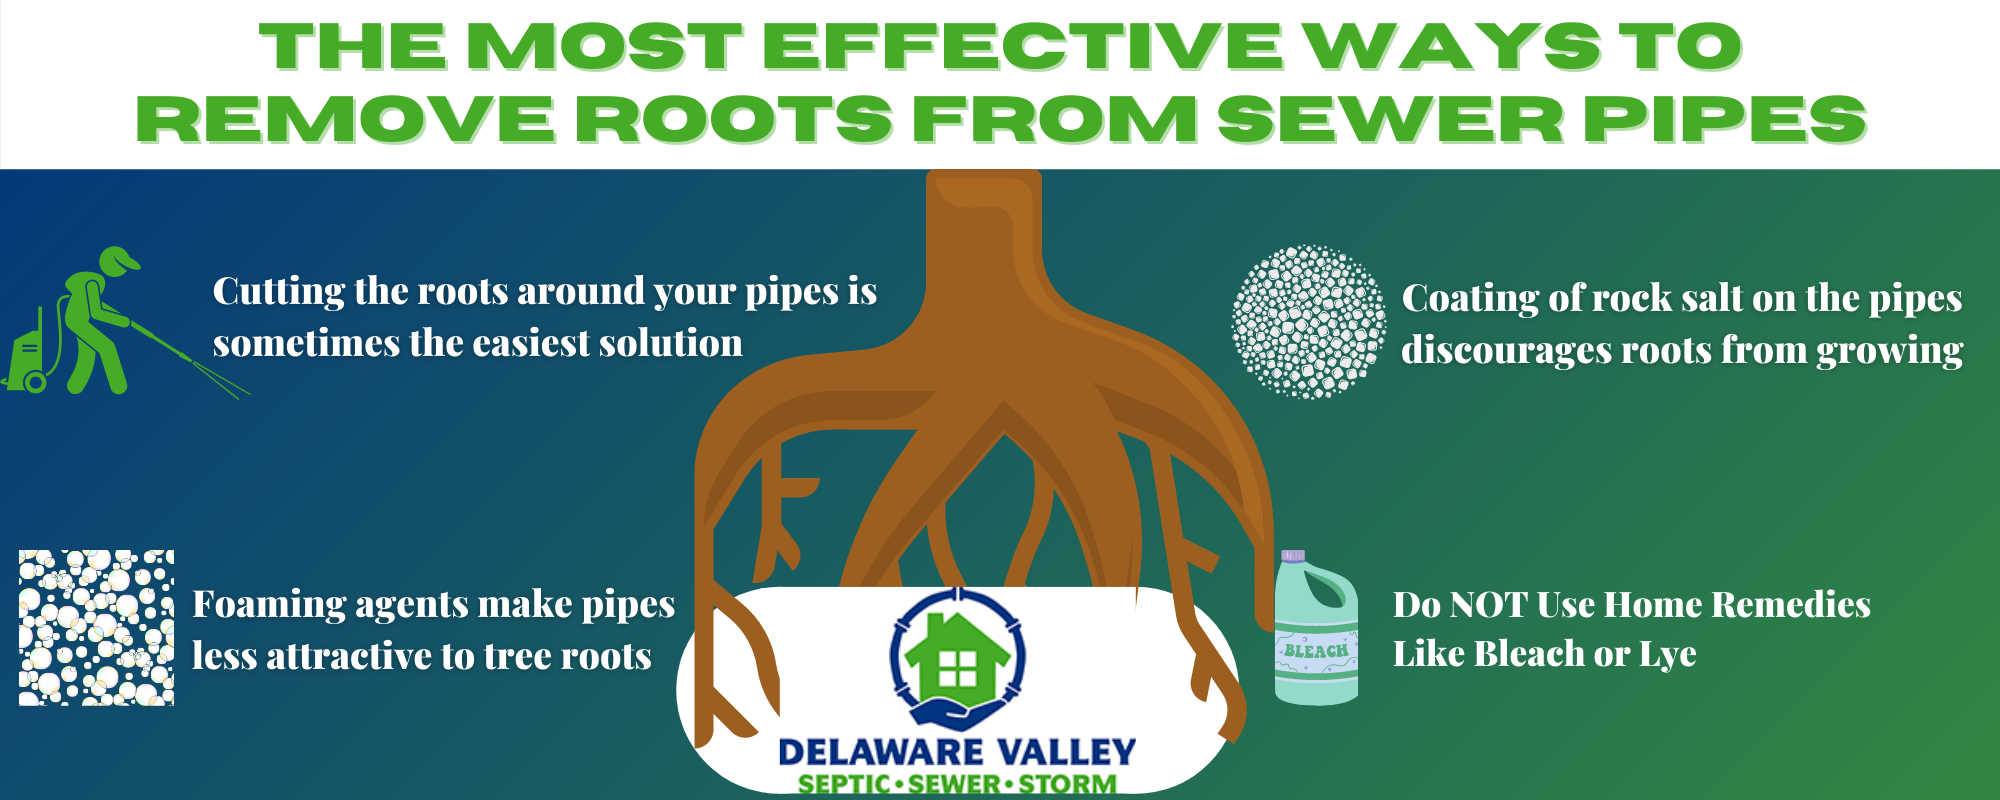 Infographic detailing the most effective ways of removing roots from your sewer pipes